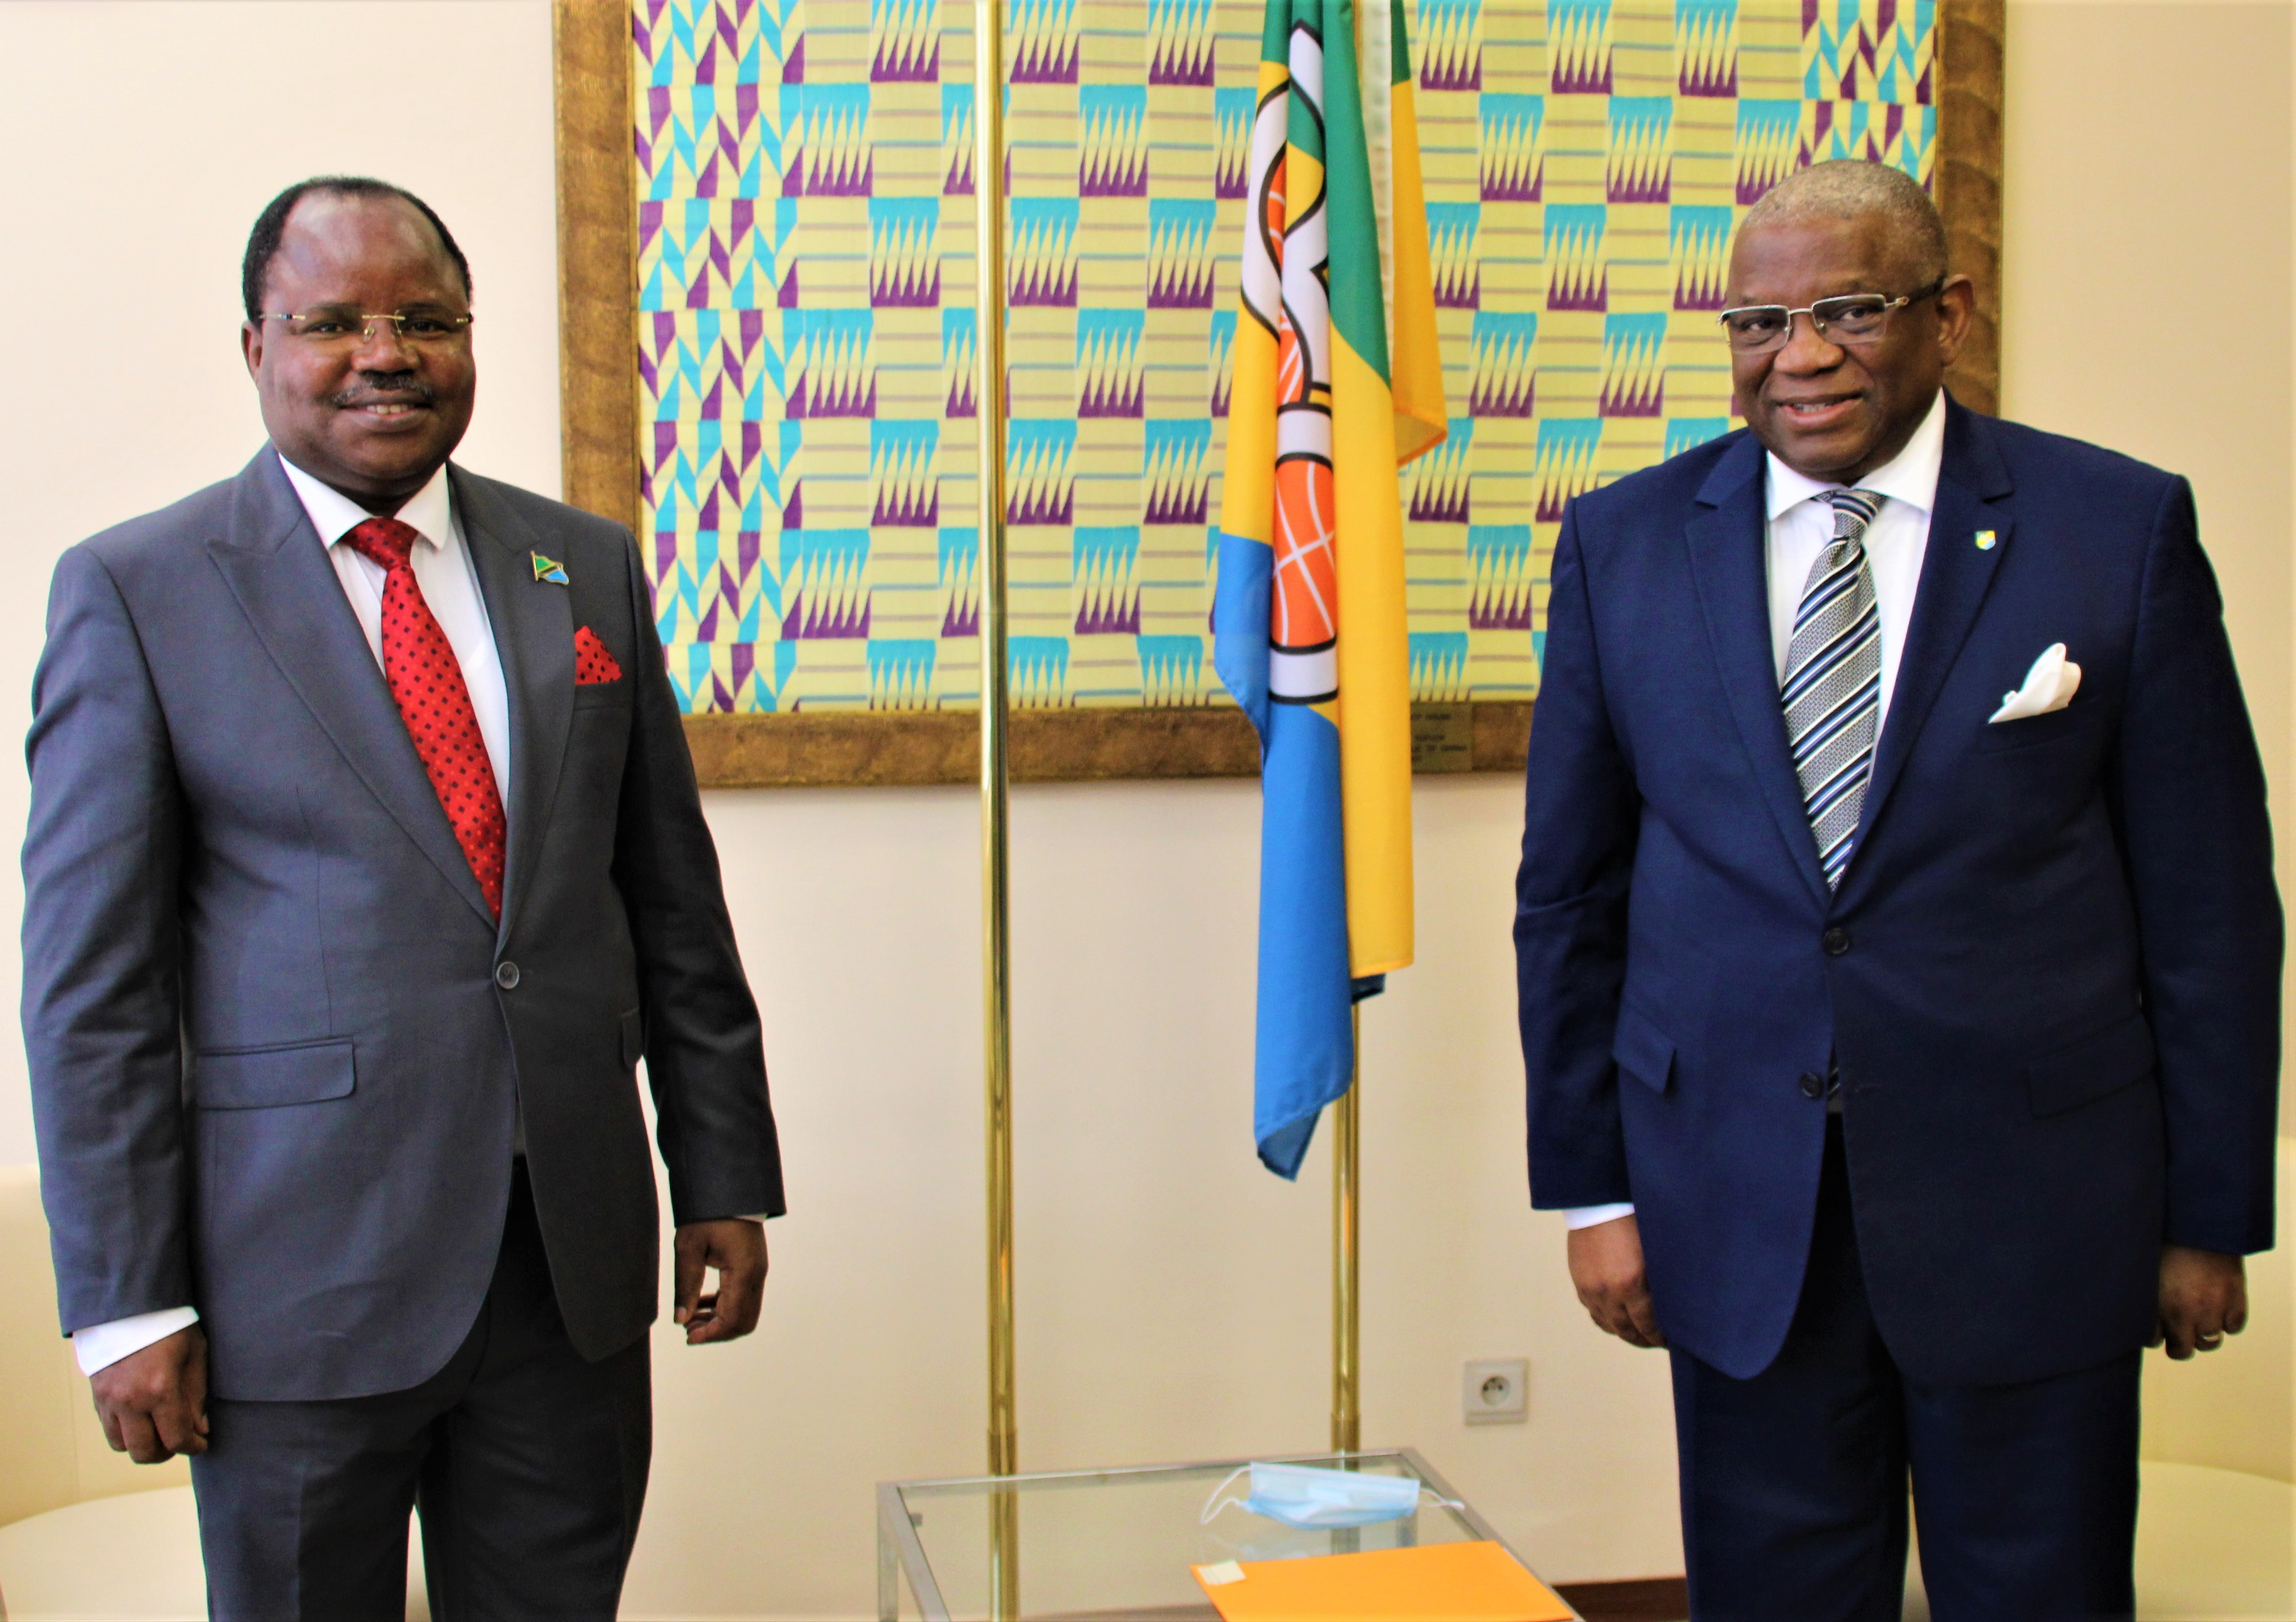 Meeting with H.E. Mr Jestas Abuok NYAMANGA Ambassador of the United Republic of Tanzania, Incoming Chair of the Committee of Amb